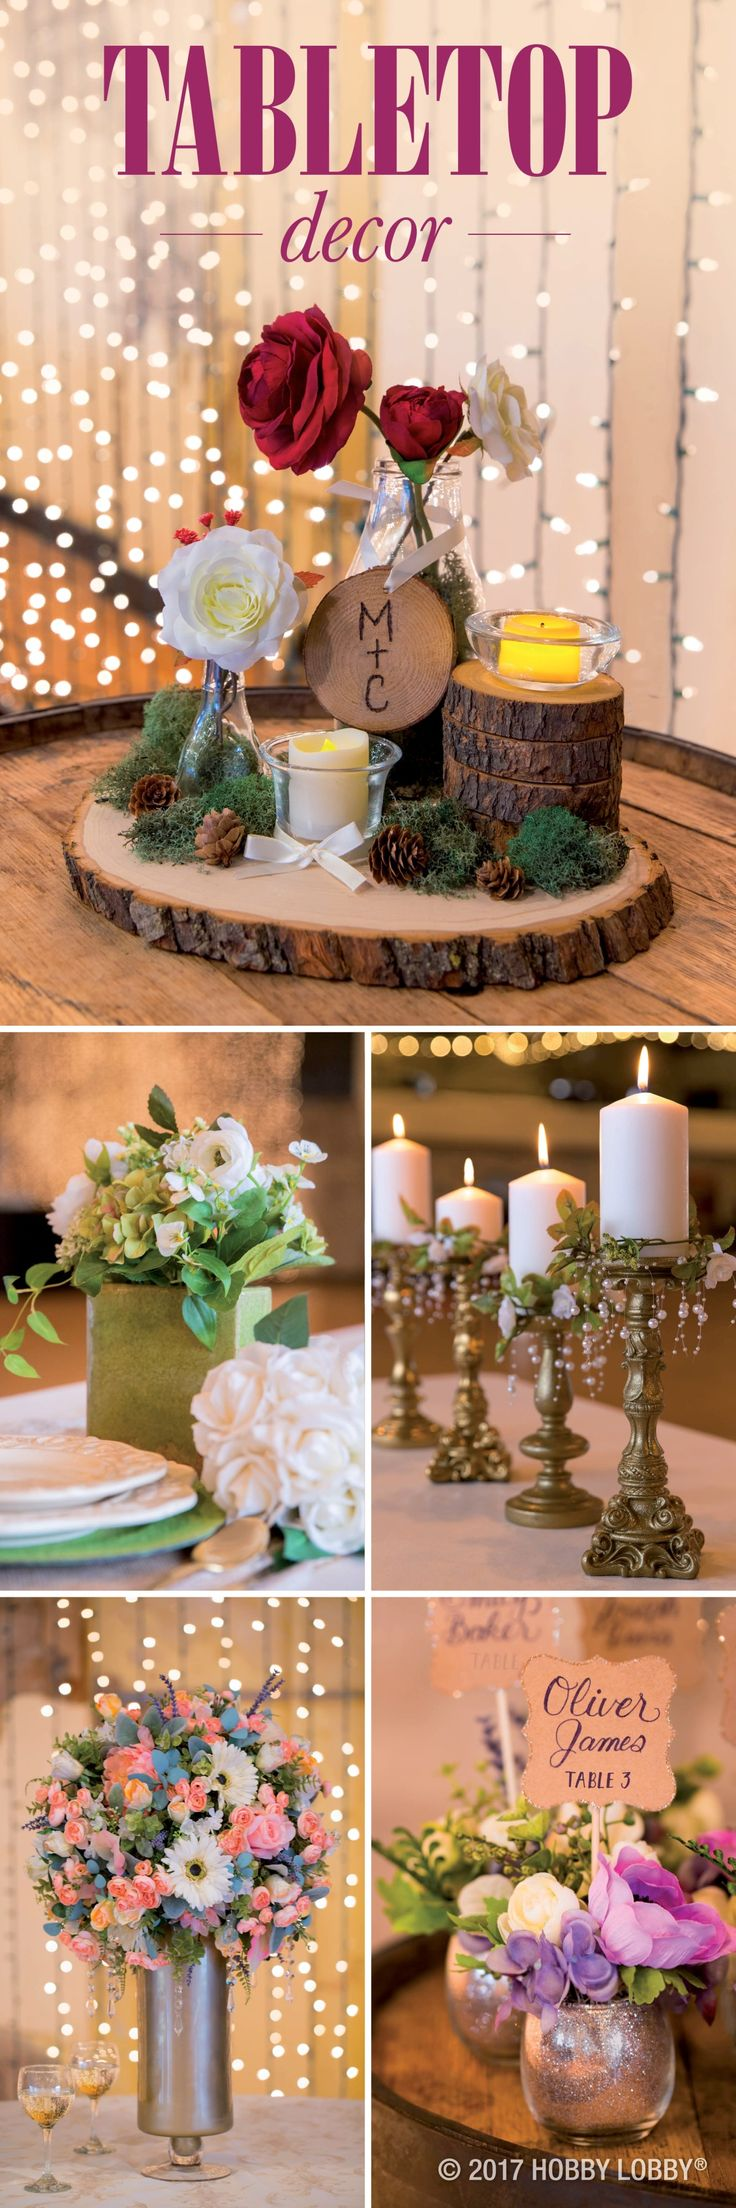 from hobby lobby diy centerpieces to inspire your wedding reception decor